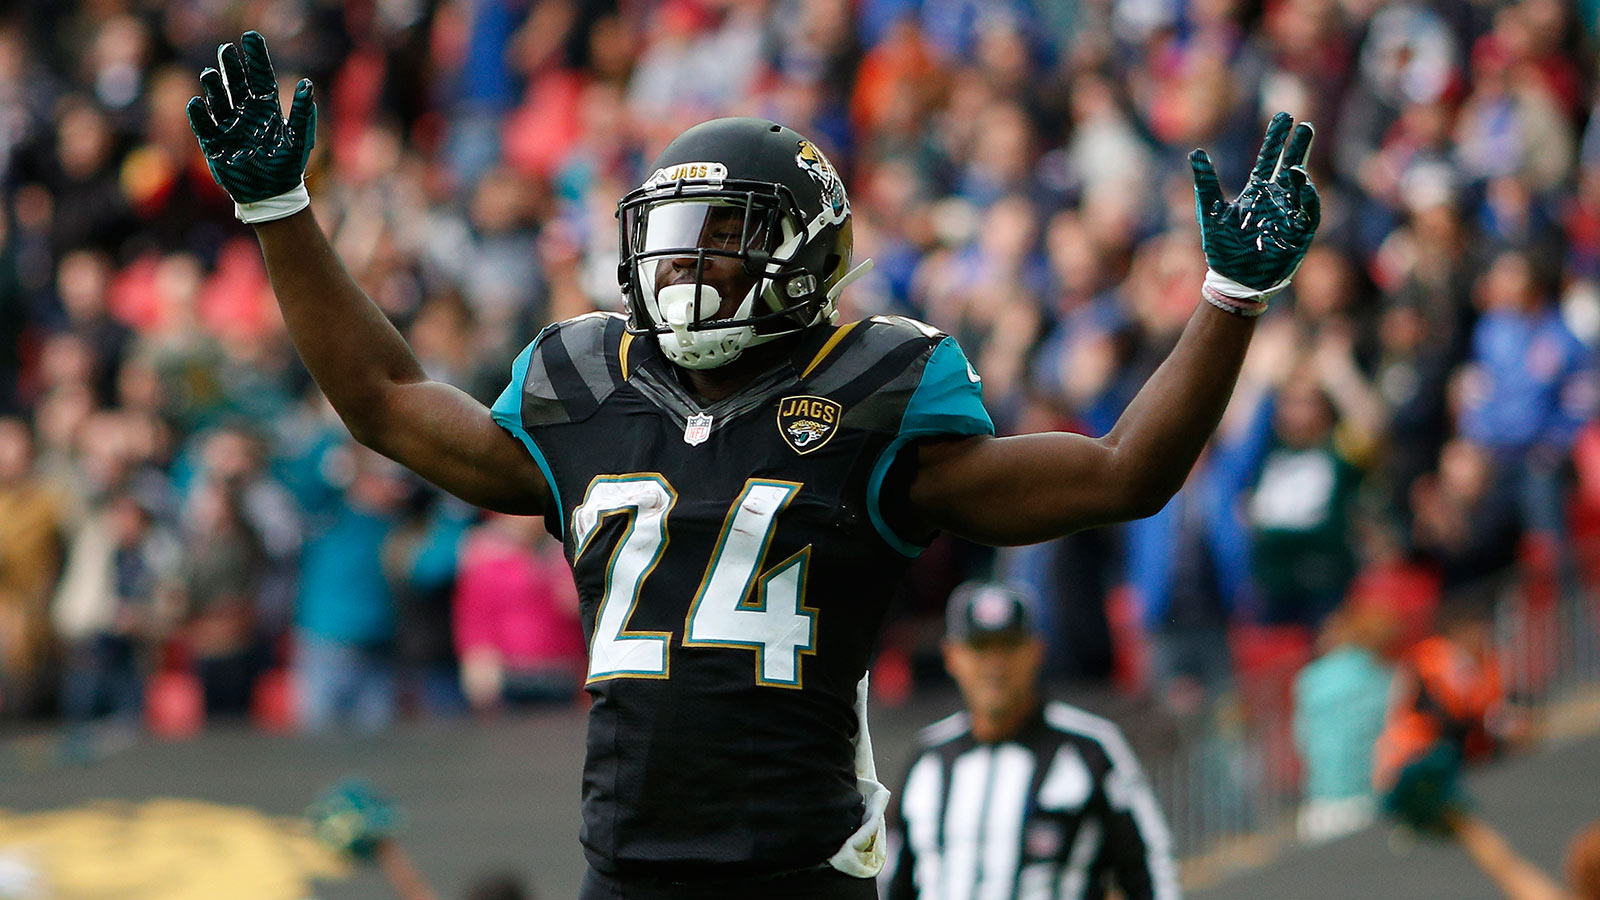 Jaguars running back Yeldon active, starting against Titans